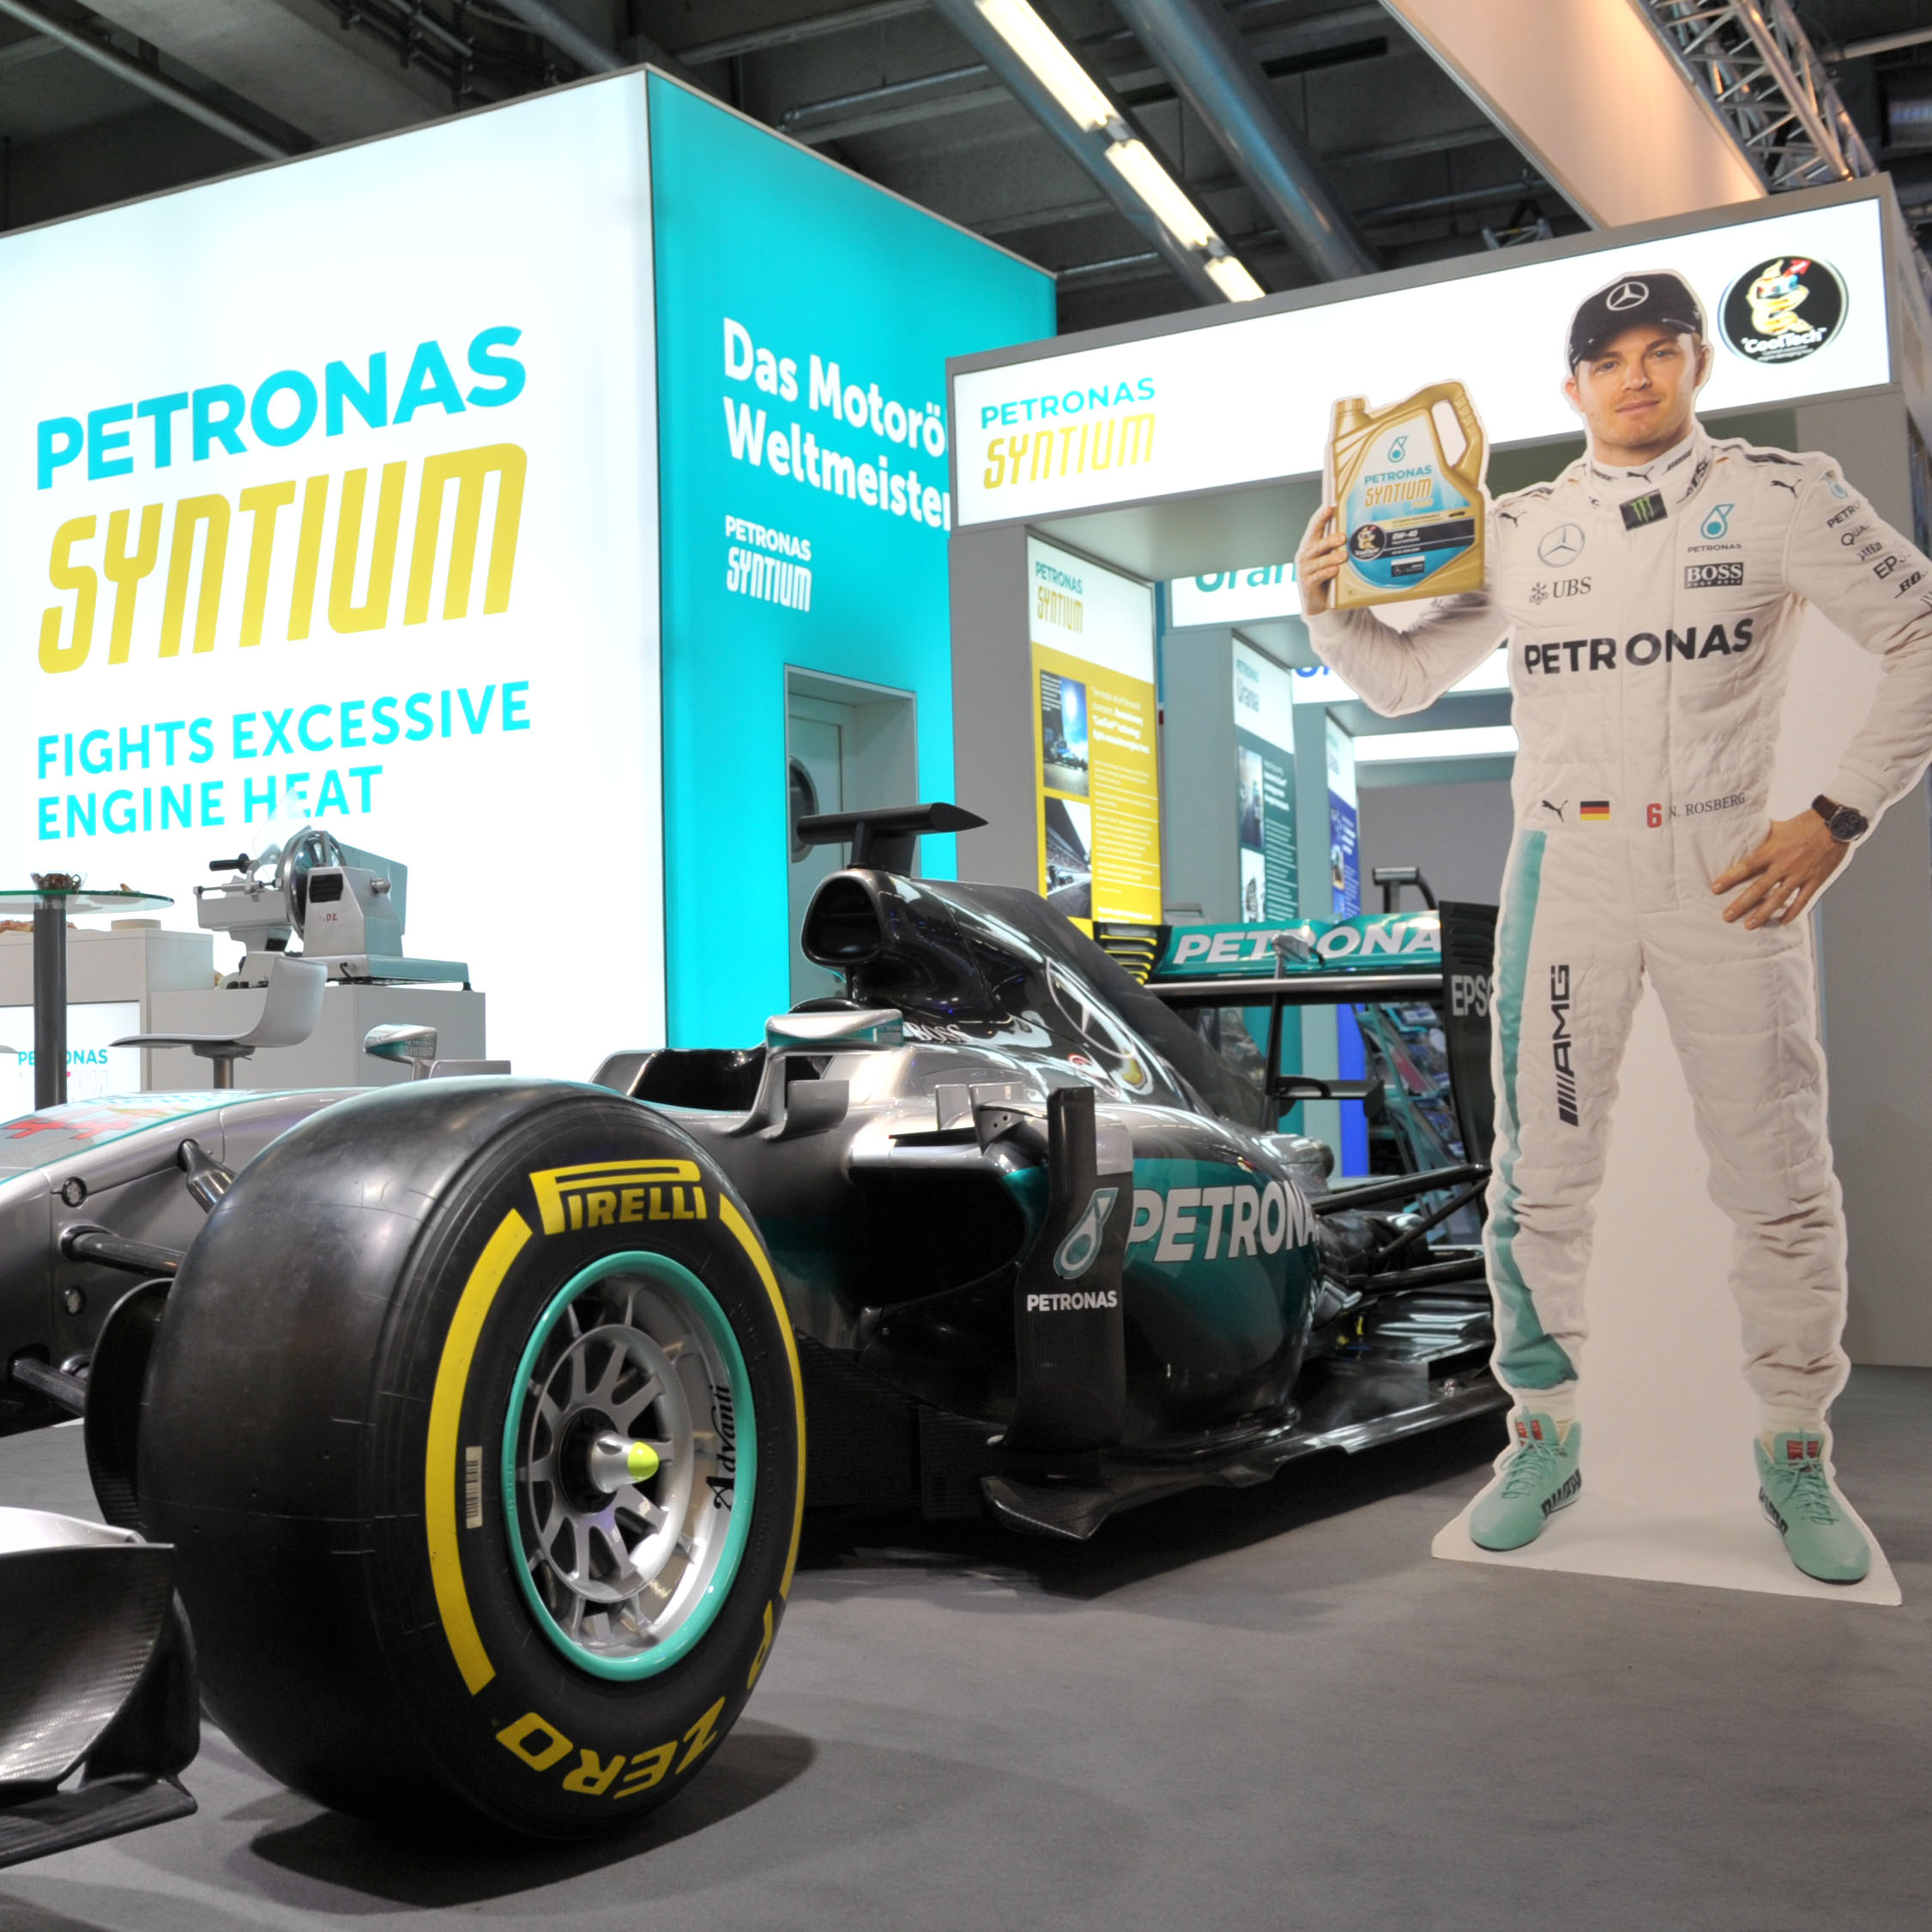 Petronas Automechanika